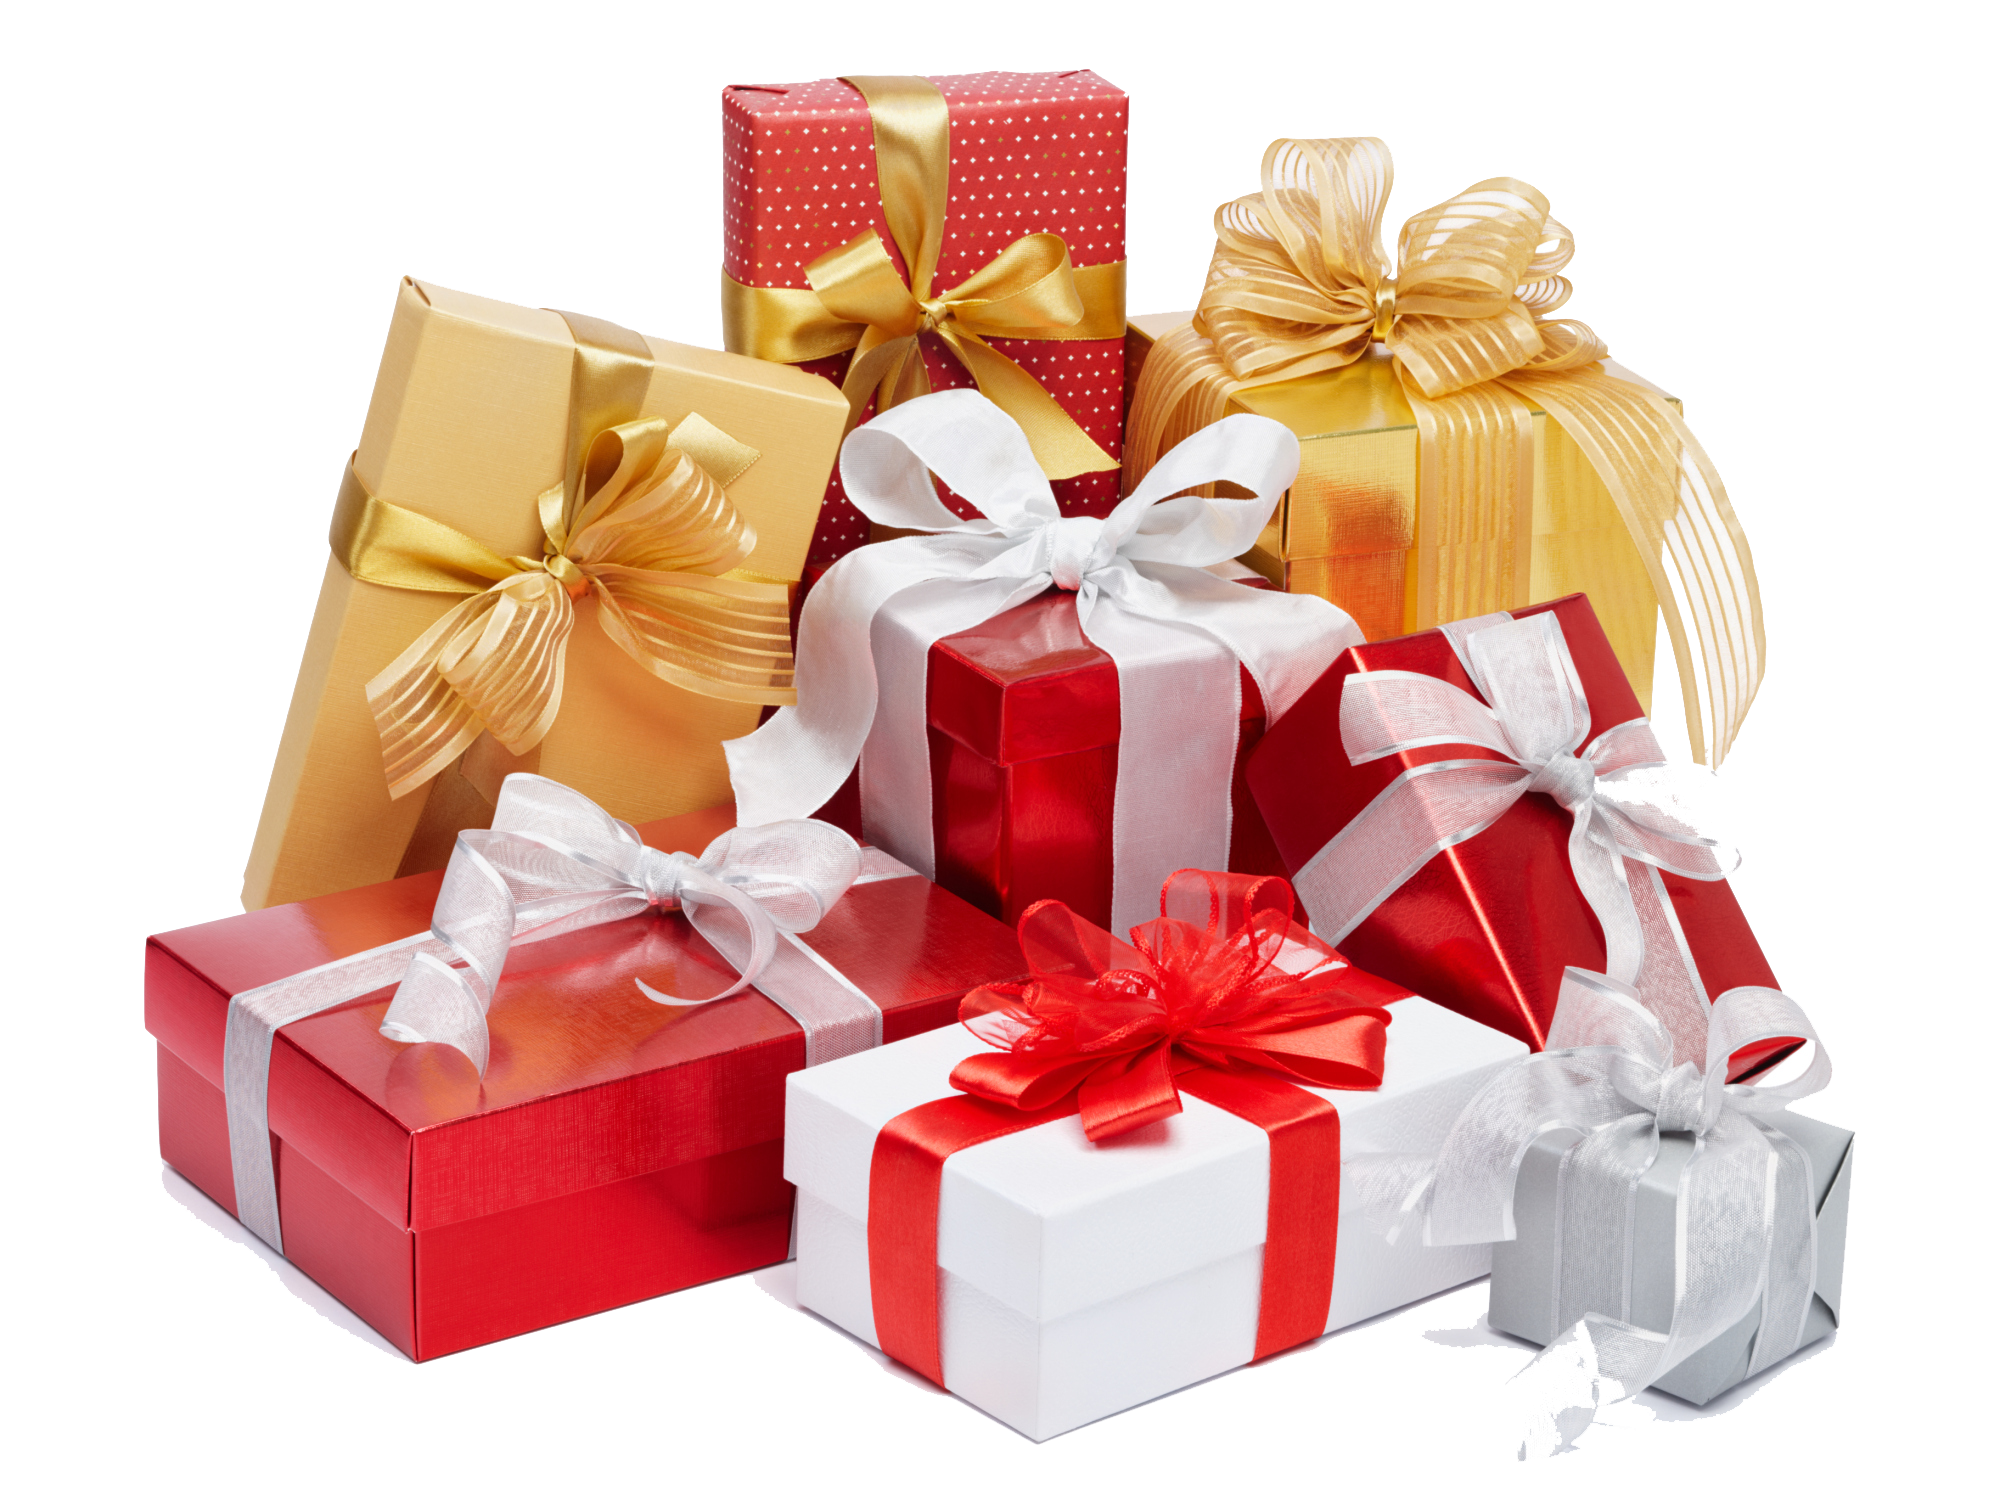 Christmas Gift Box Png.Download Christmas Gift Transparent Hq Png Image Freepngimg